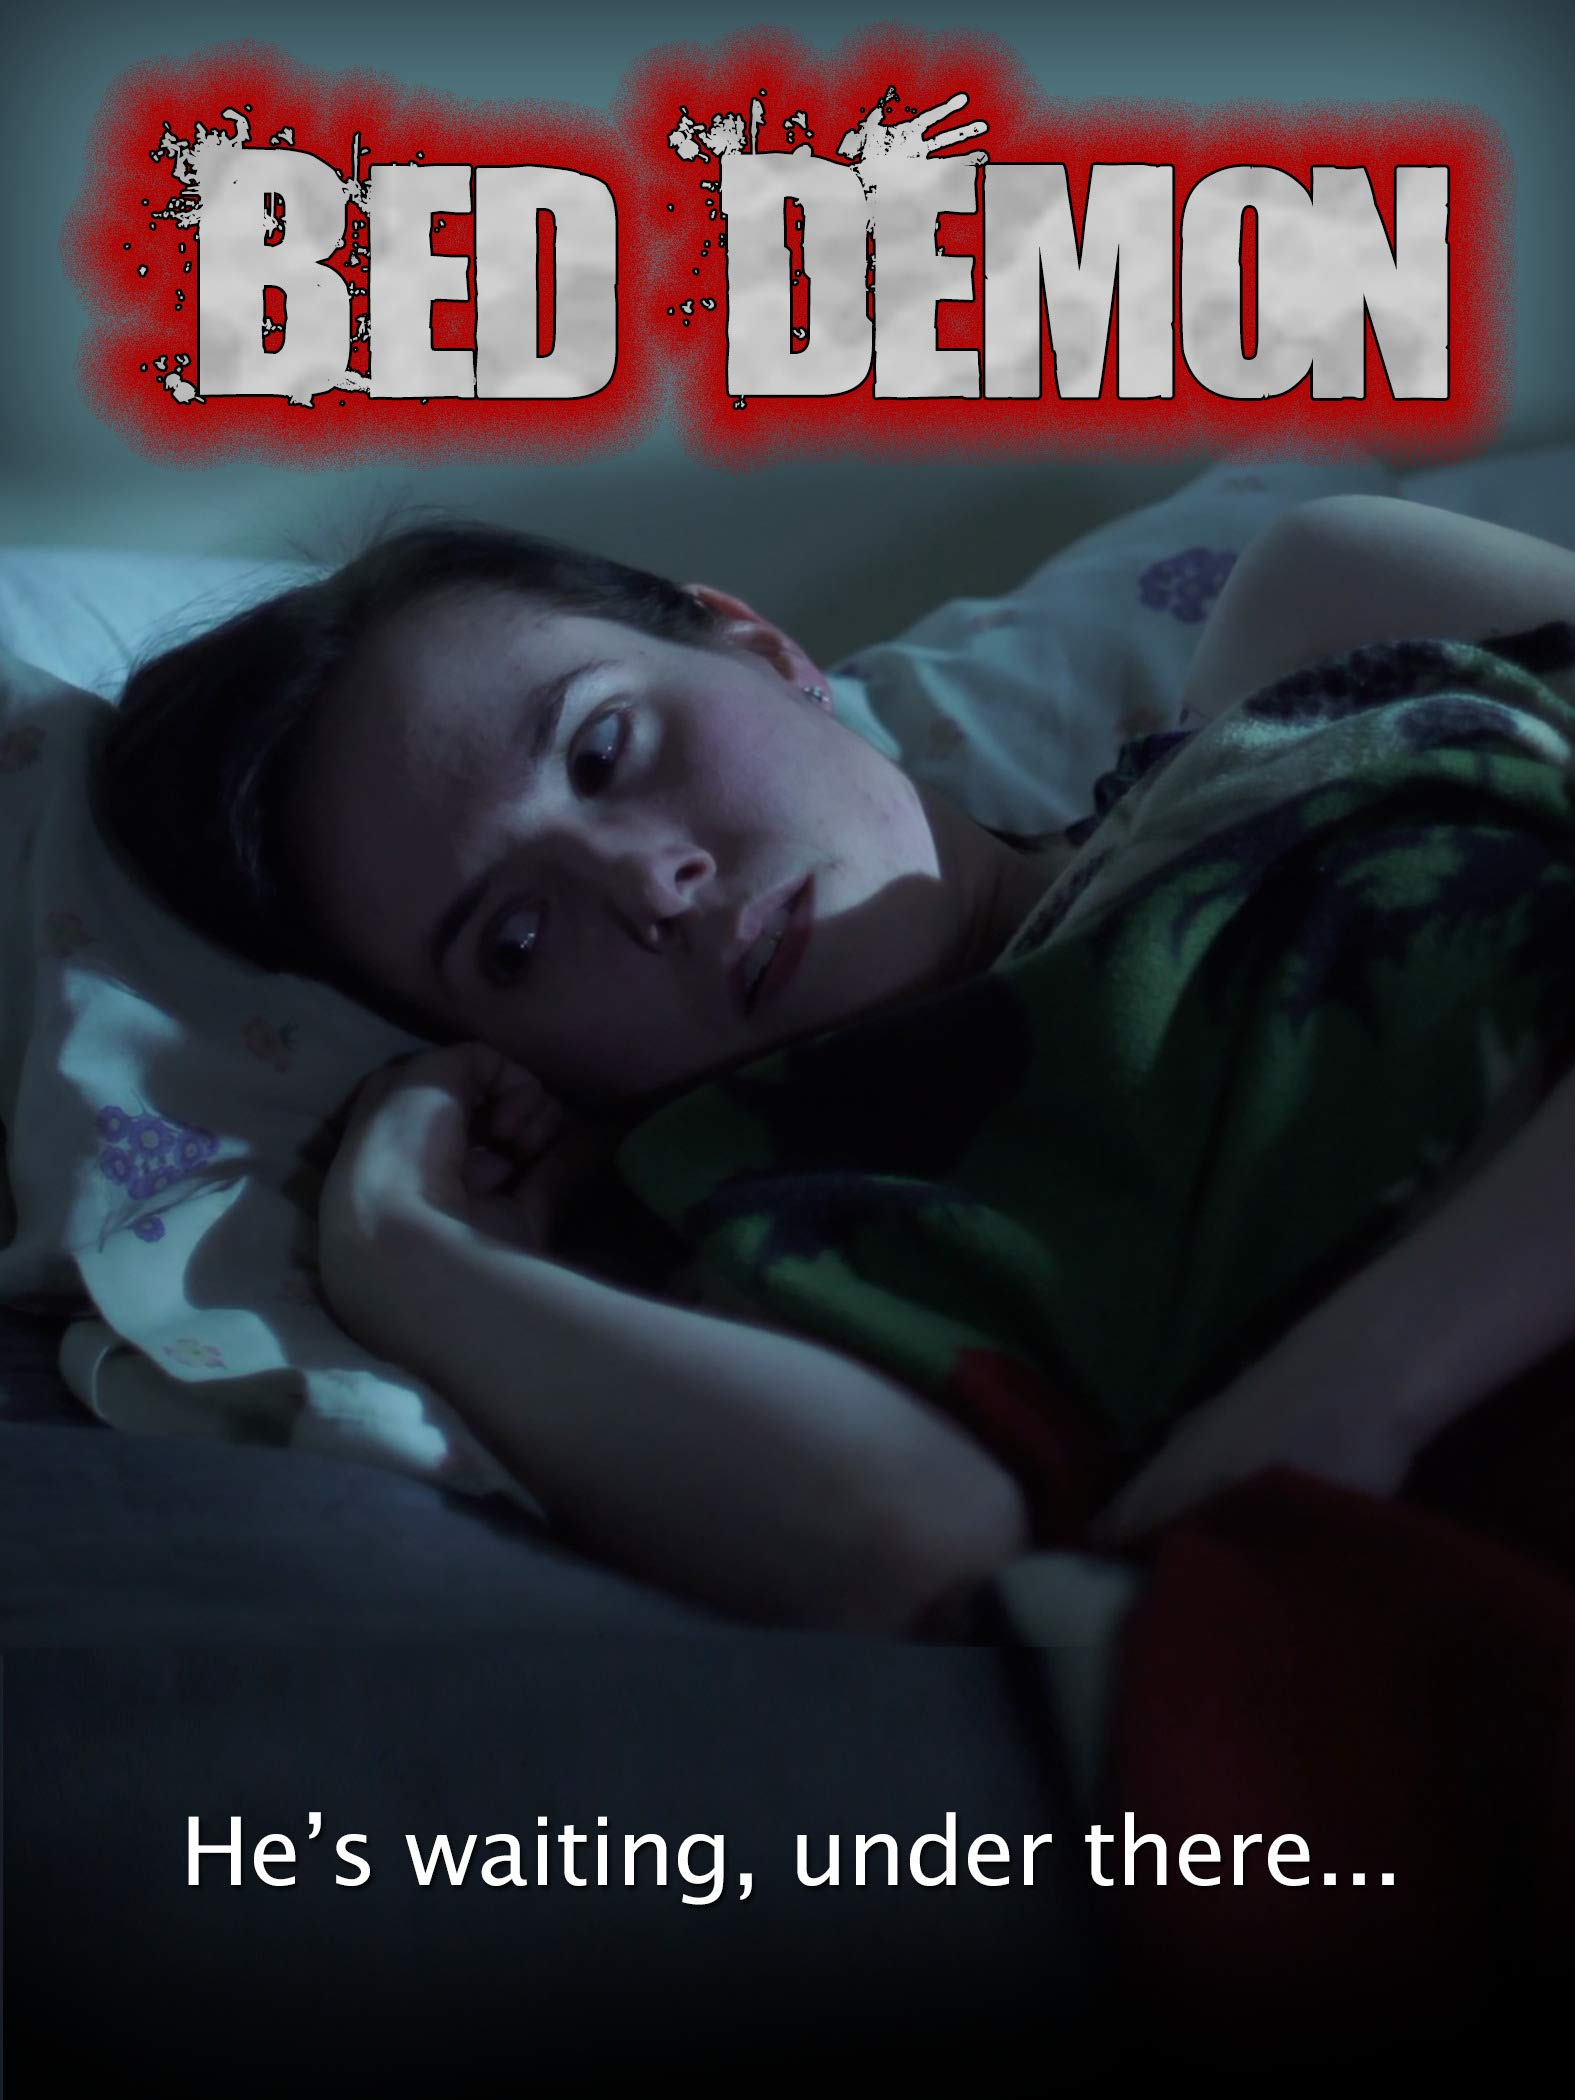 Bed Demon